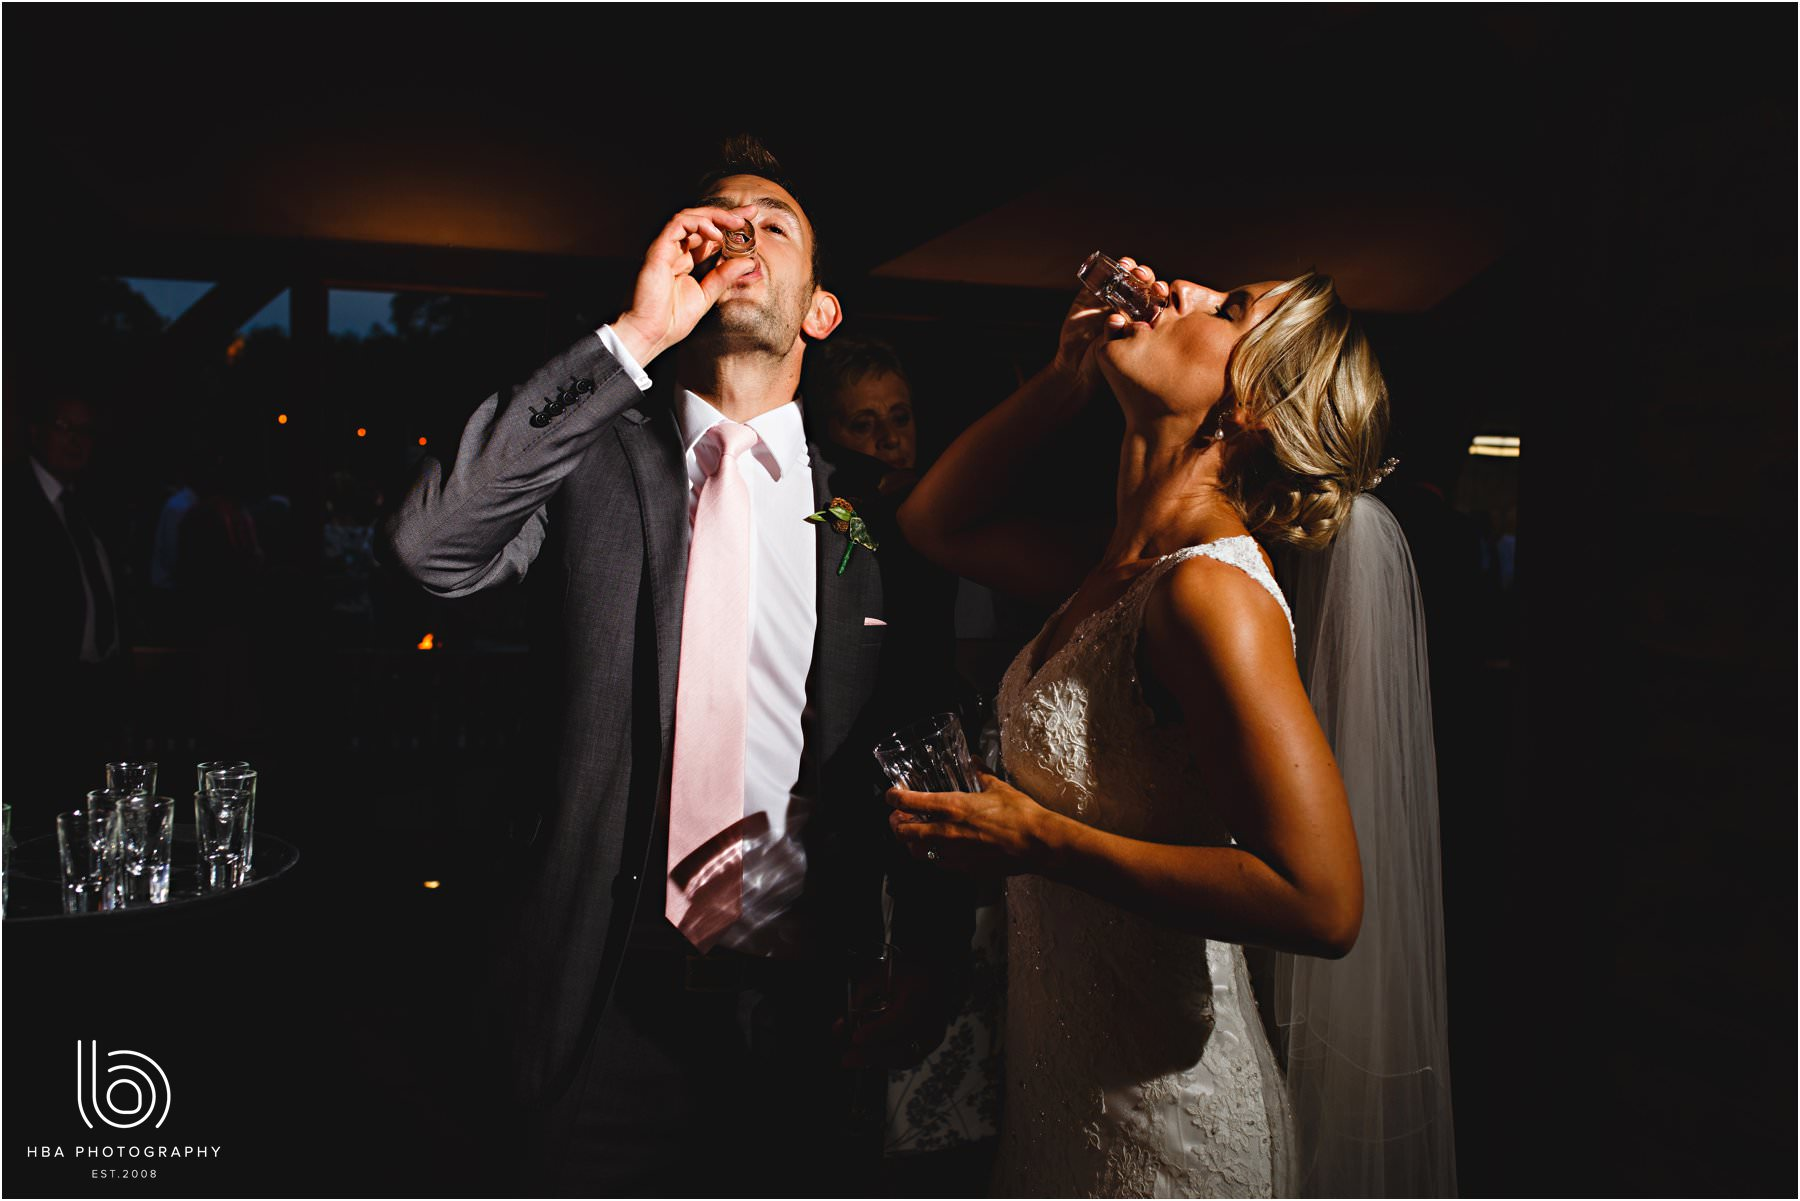 The bride & groom doing shots